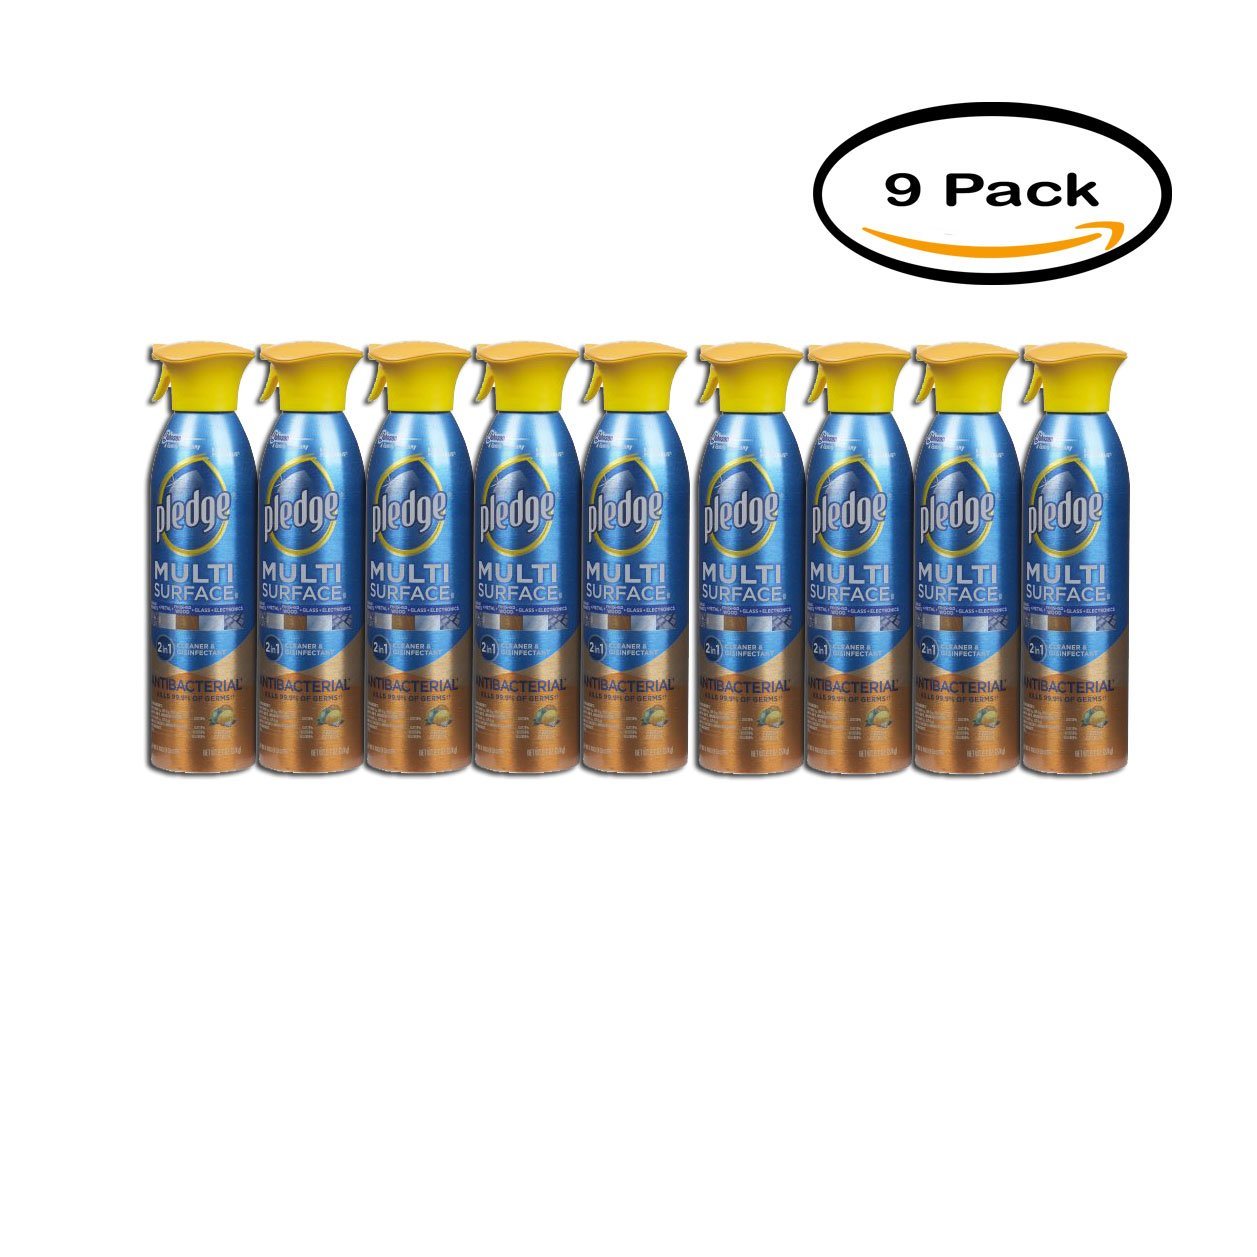 PACK OF 9 - Pledge Multi Surface Antibacterial Everyday Cleaner 9.7 Ounces.